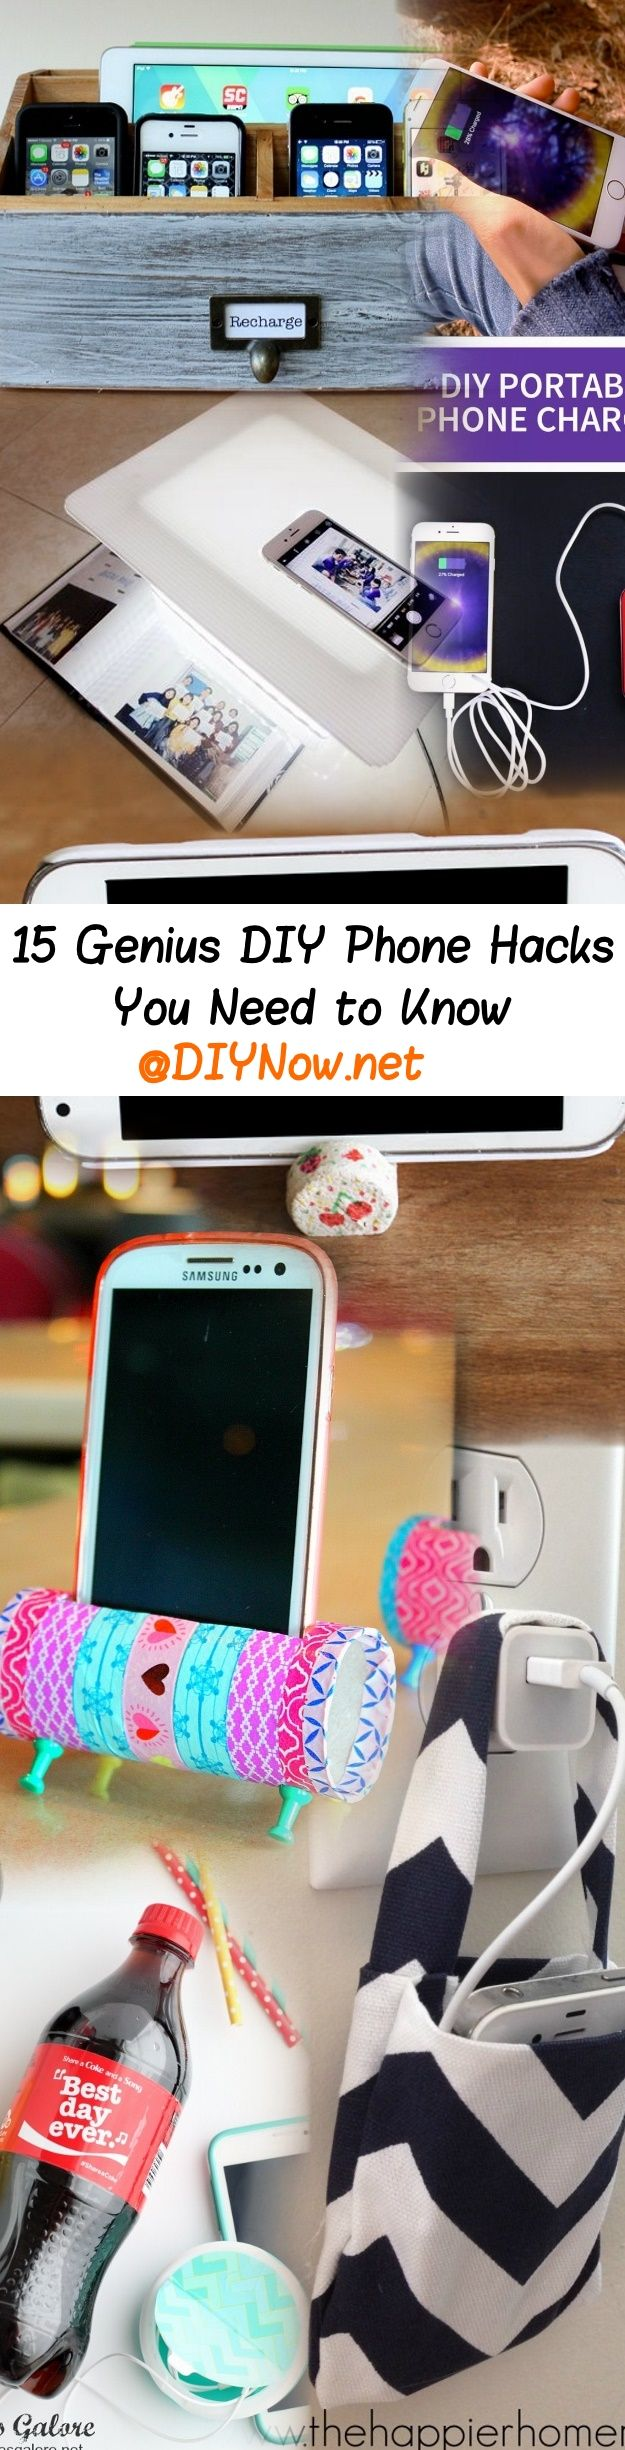 15 Genius DIY Phone Hacks You Need to Know